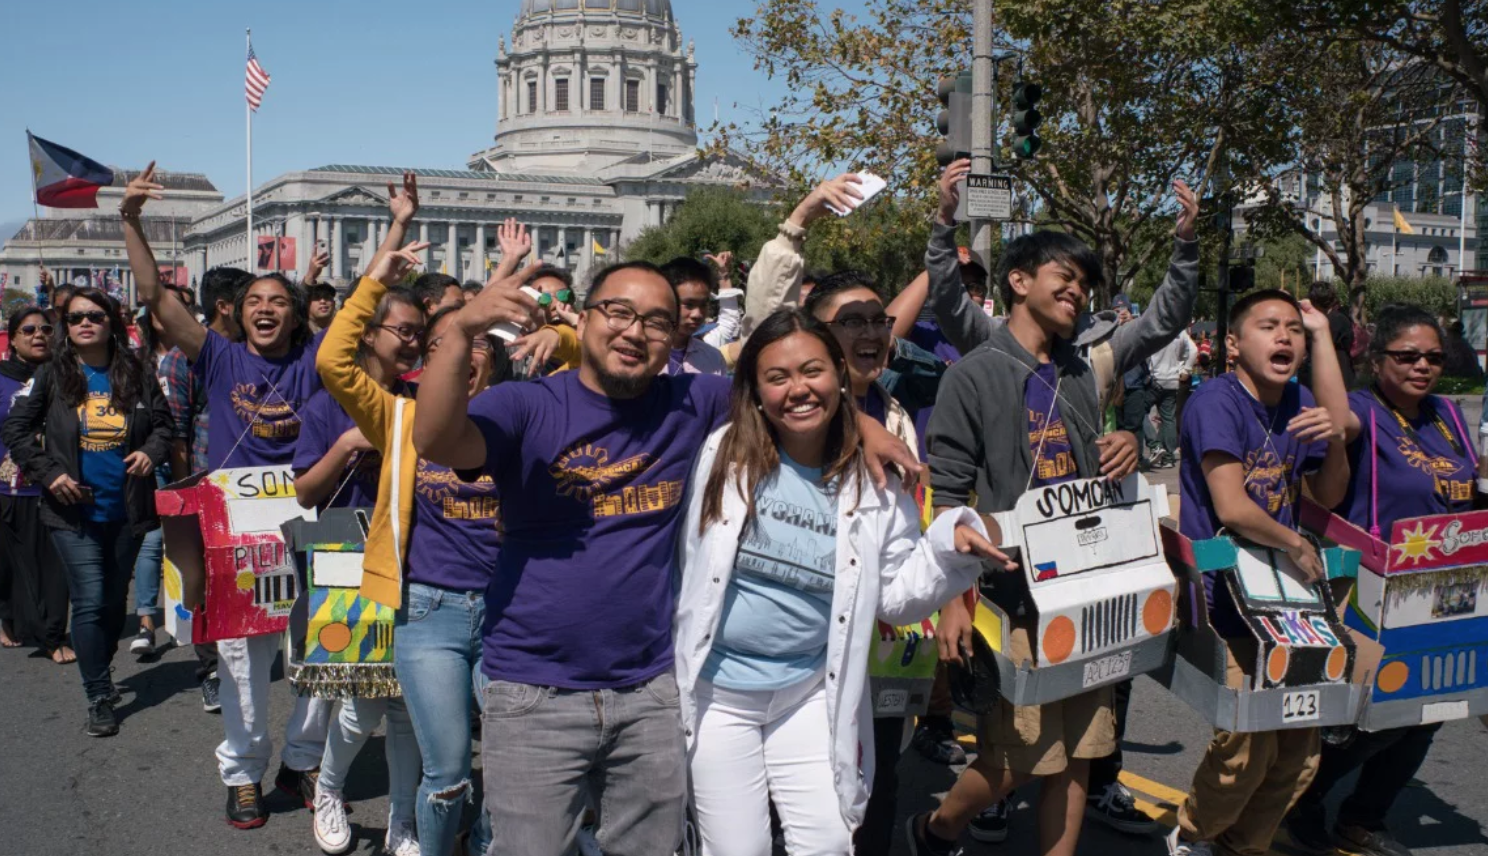 SOMCAN - The South of Market Community Action Network (SOMCAN) is a multi-racial, community-based organization, serving low-income immigrant youth and families in SoMa and greater San Francisco since 2000.